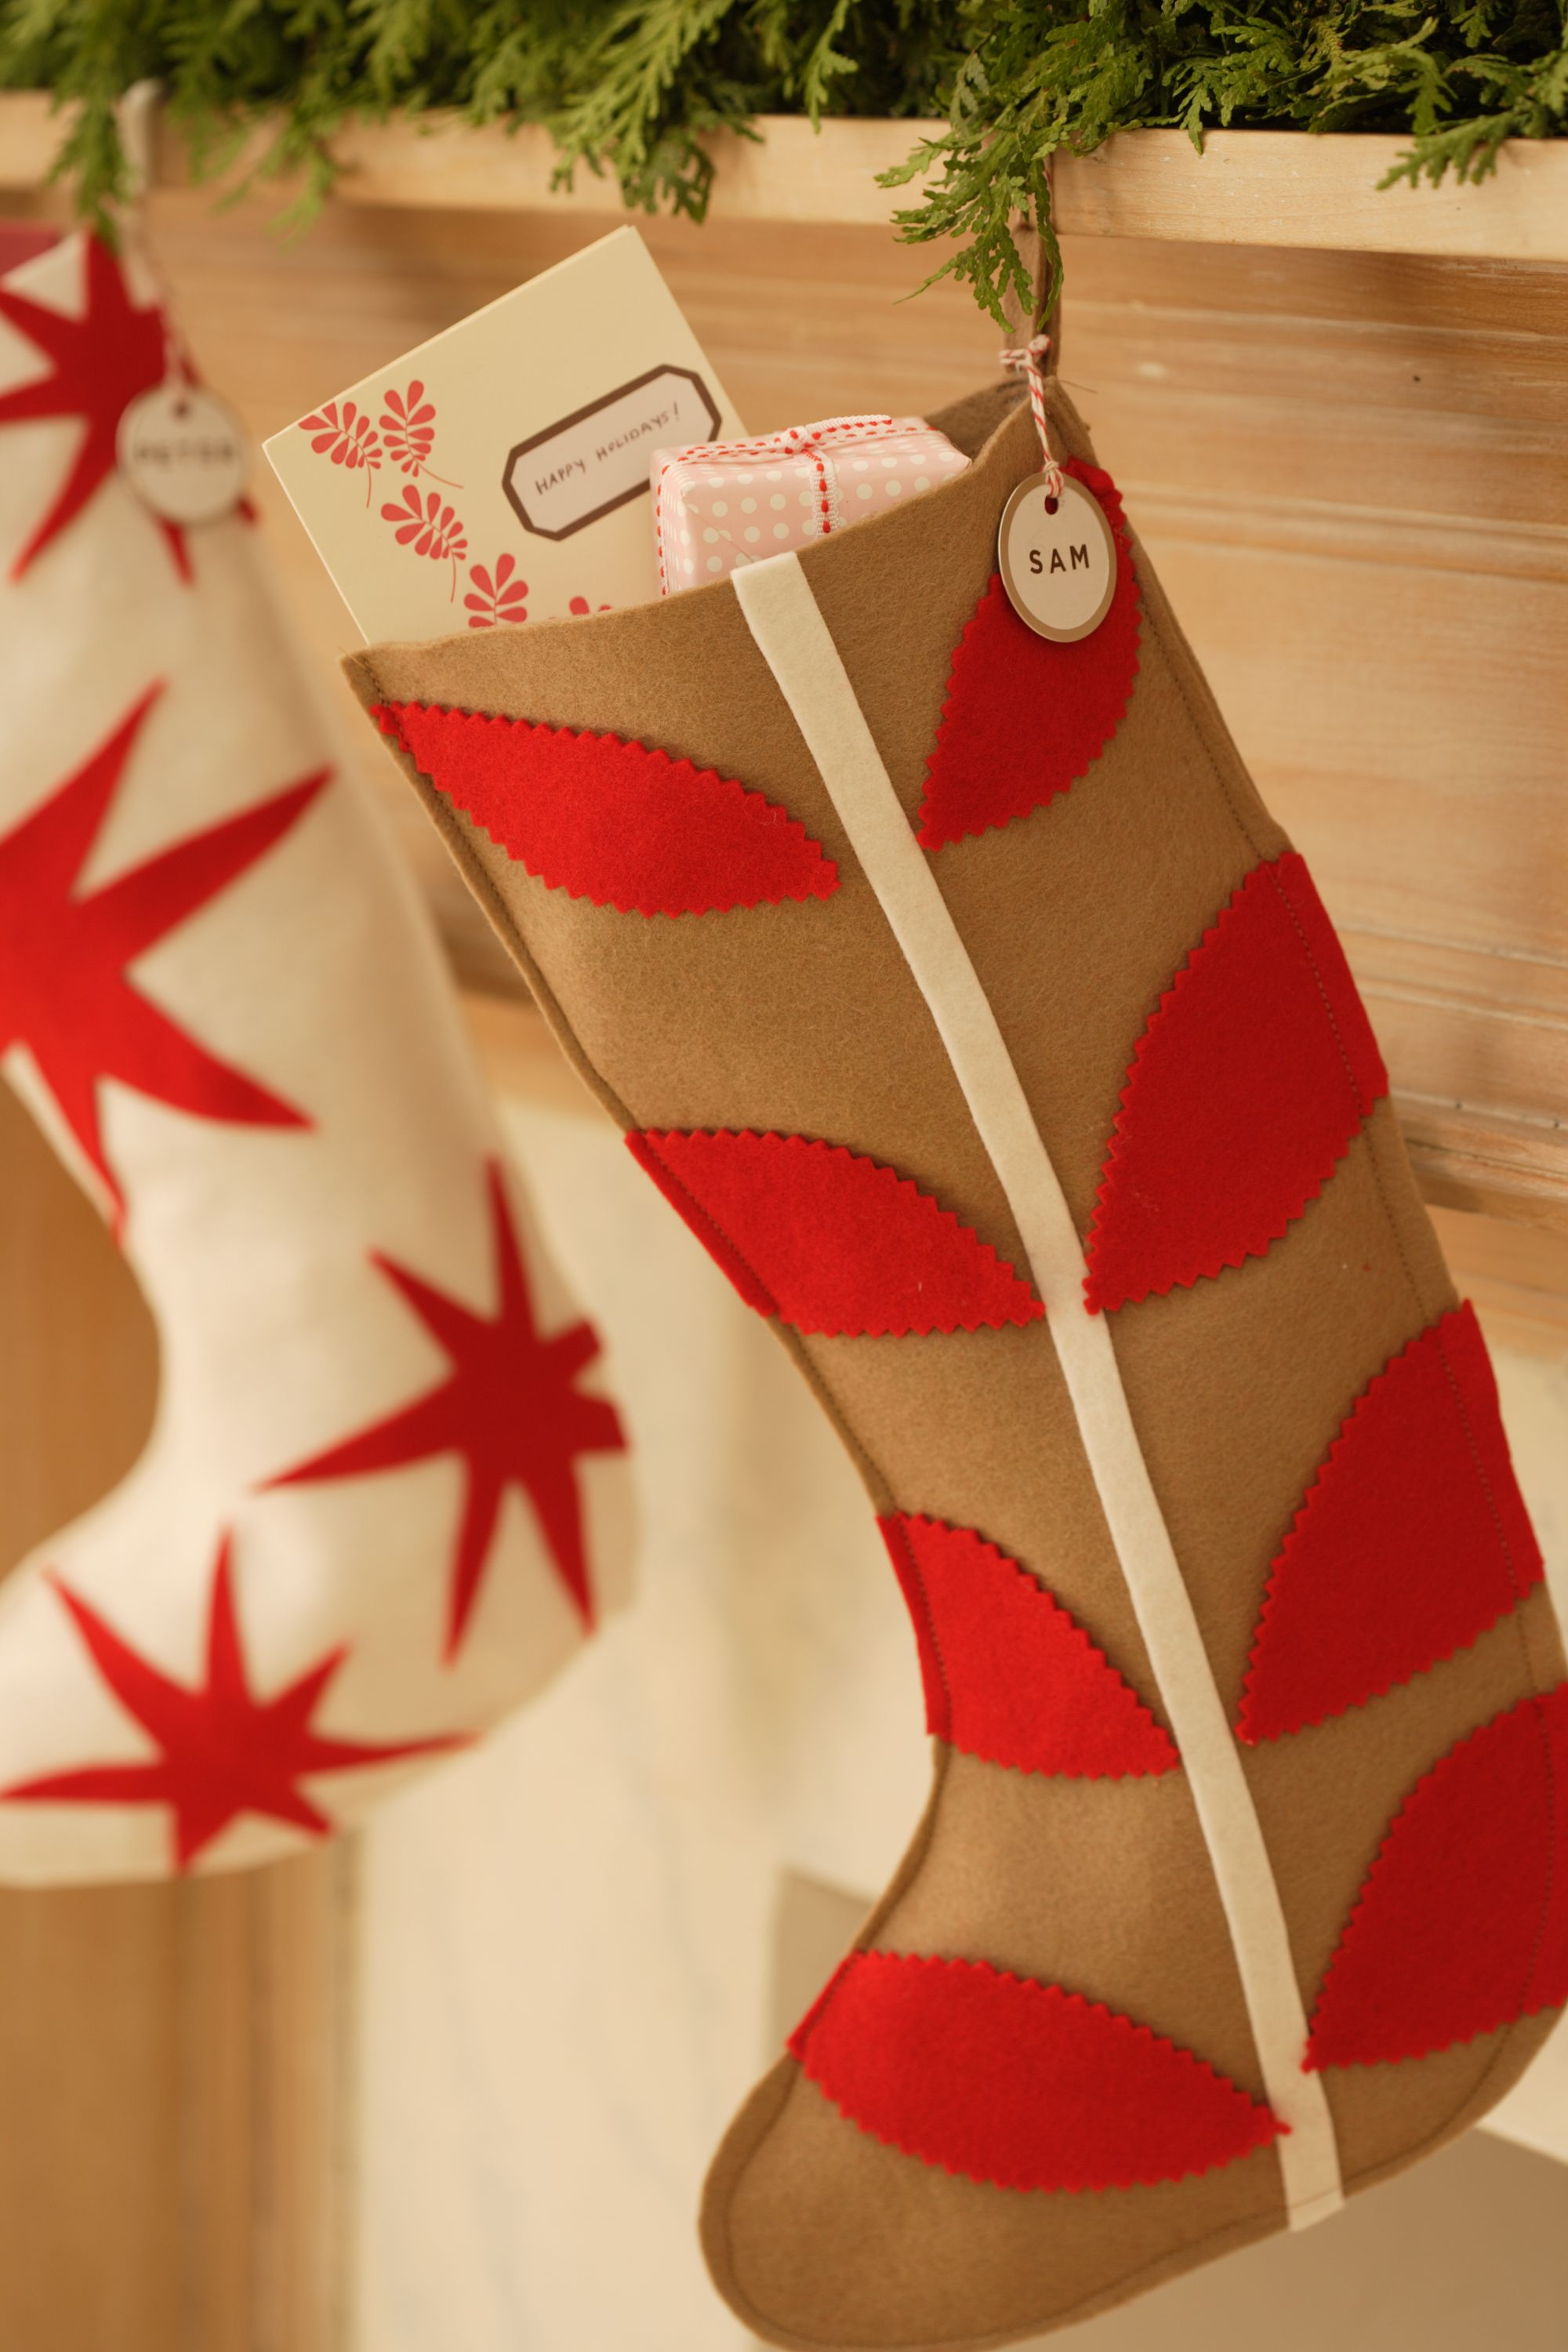 20 diy christmas stockings how to make christmas stockings craft ideas womans day - Christmas Stocking Decorating Ideas